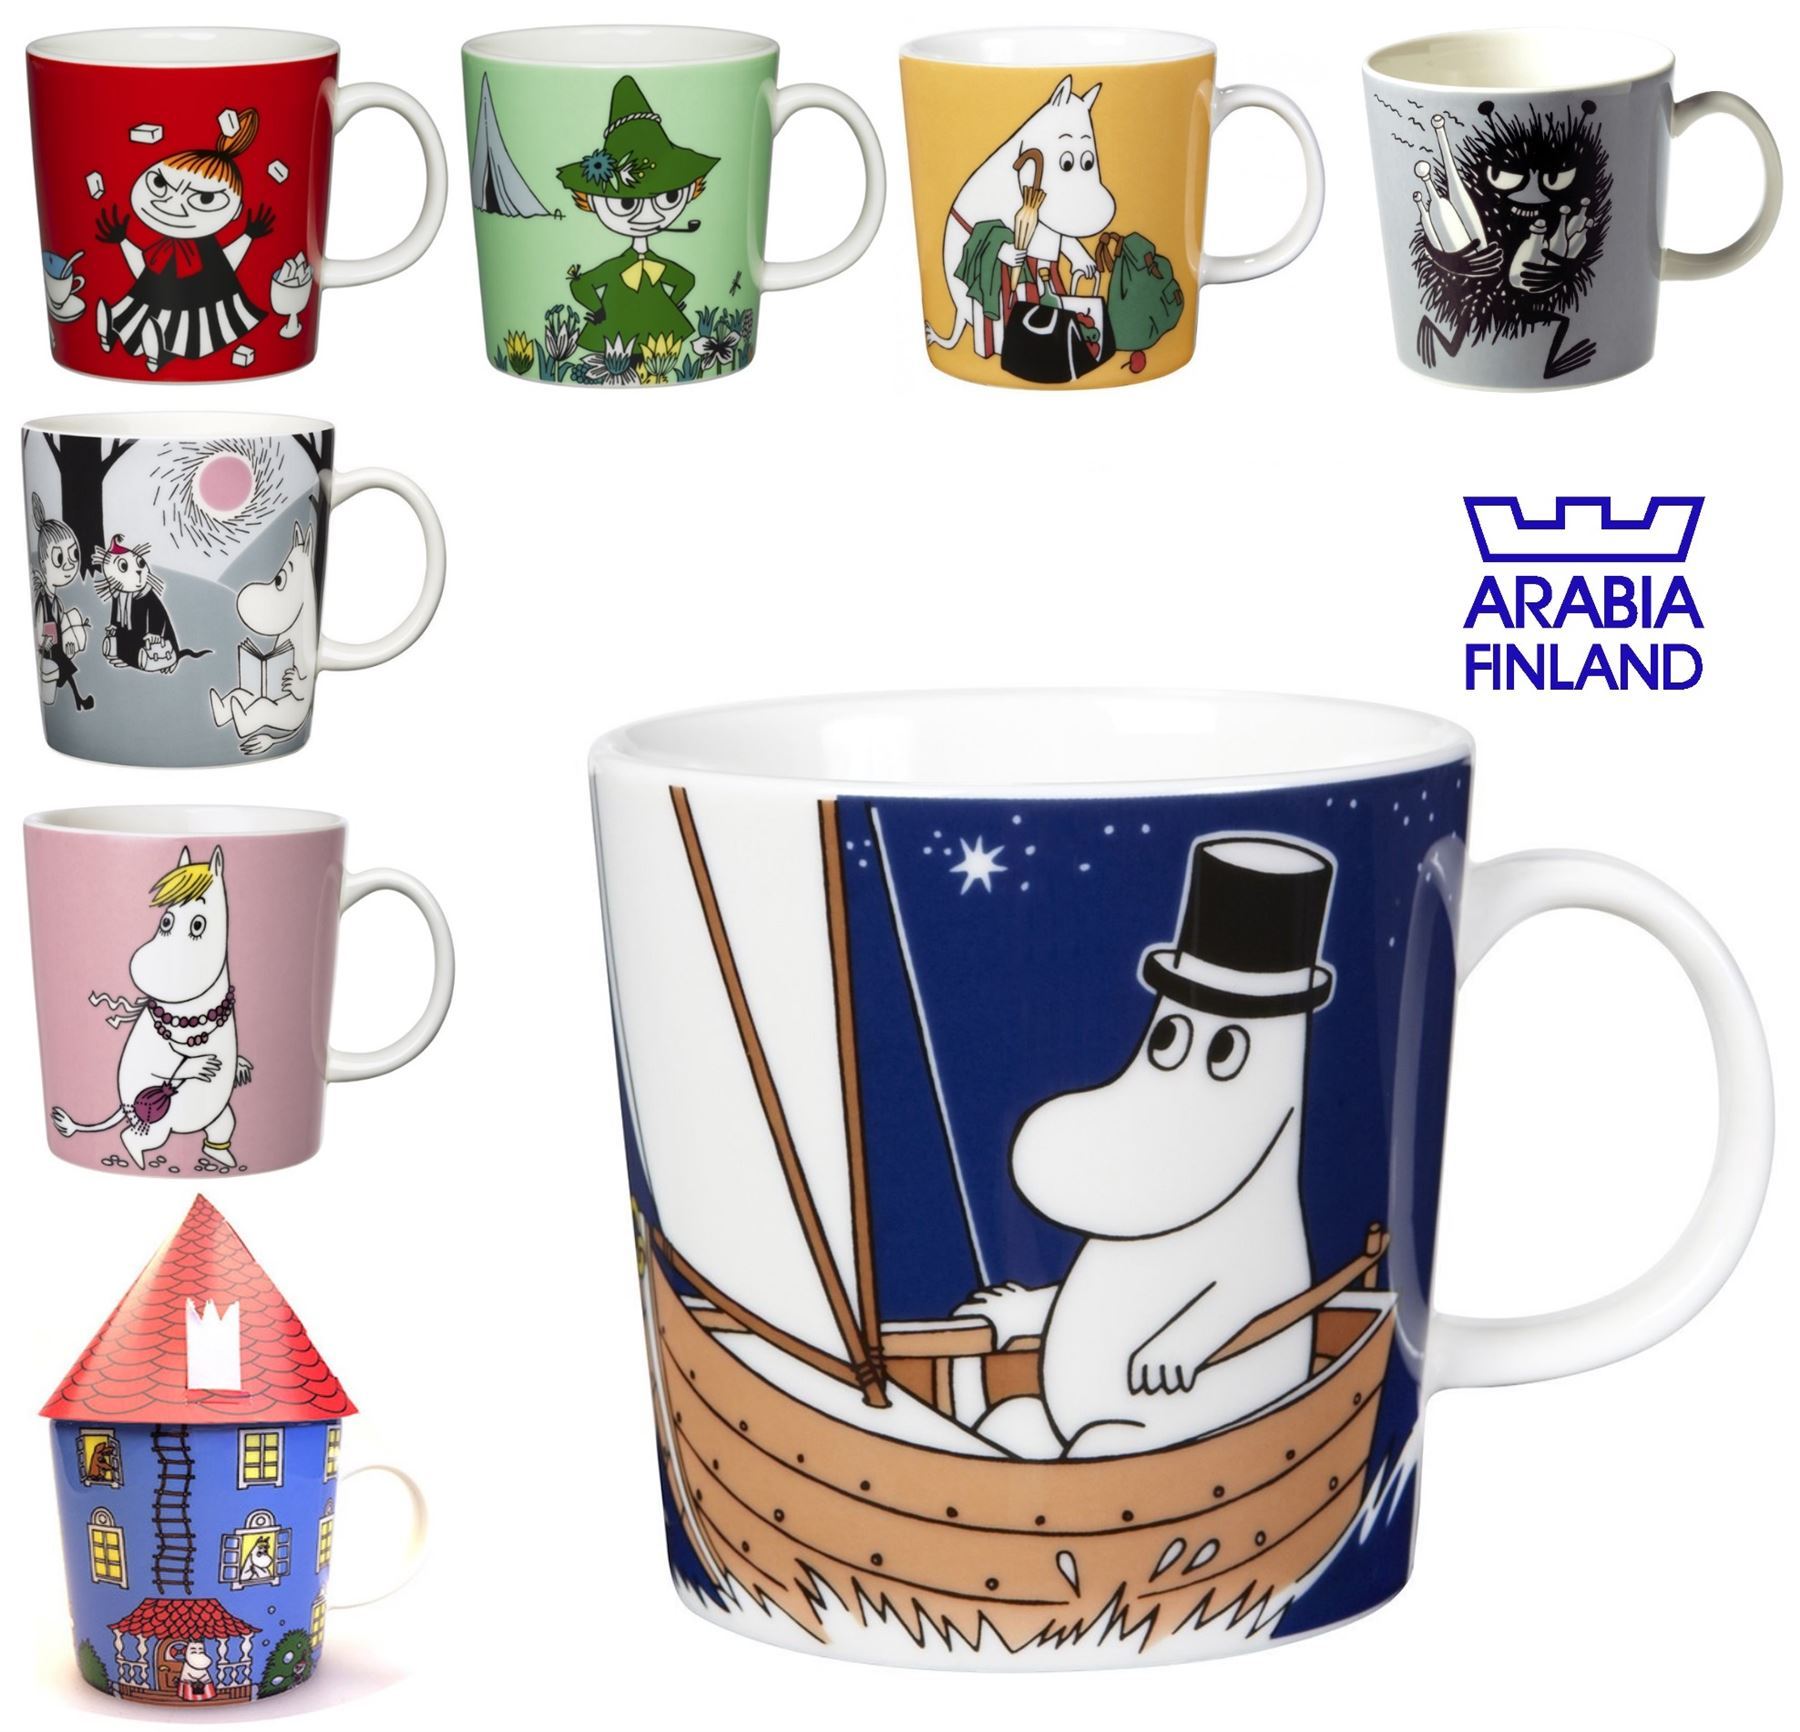 iittala keramik moomin becher tasse eg snorkmaiden moomintroll klein mein ebay. Black Bedroom Furniture Sets. Home Design Ideas